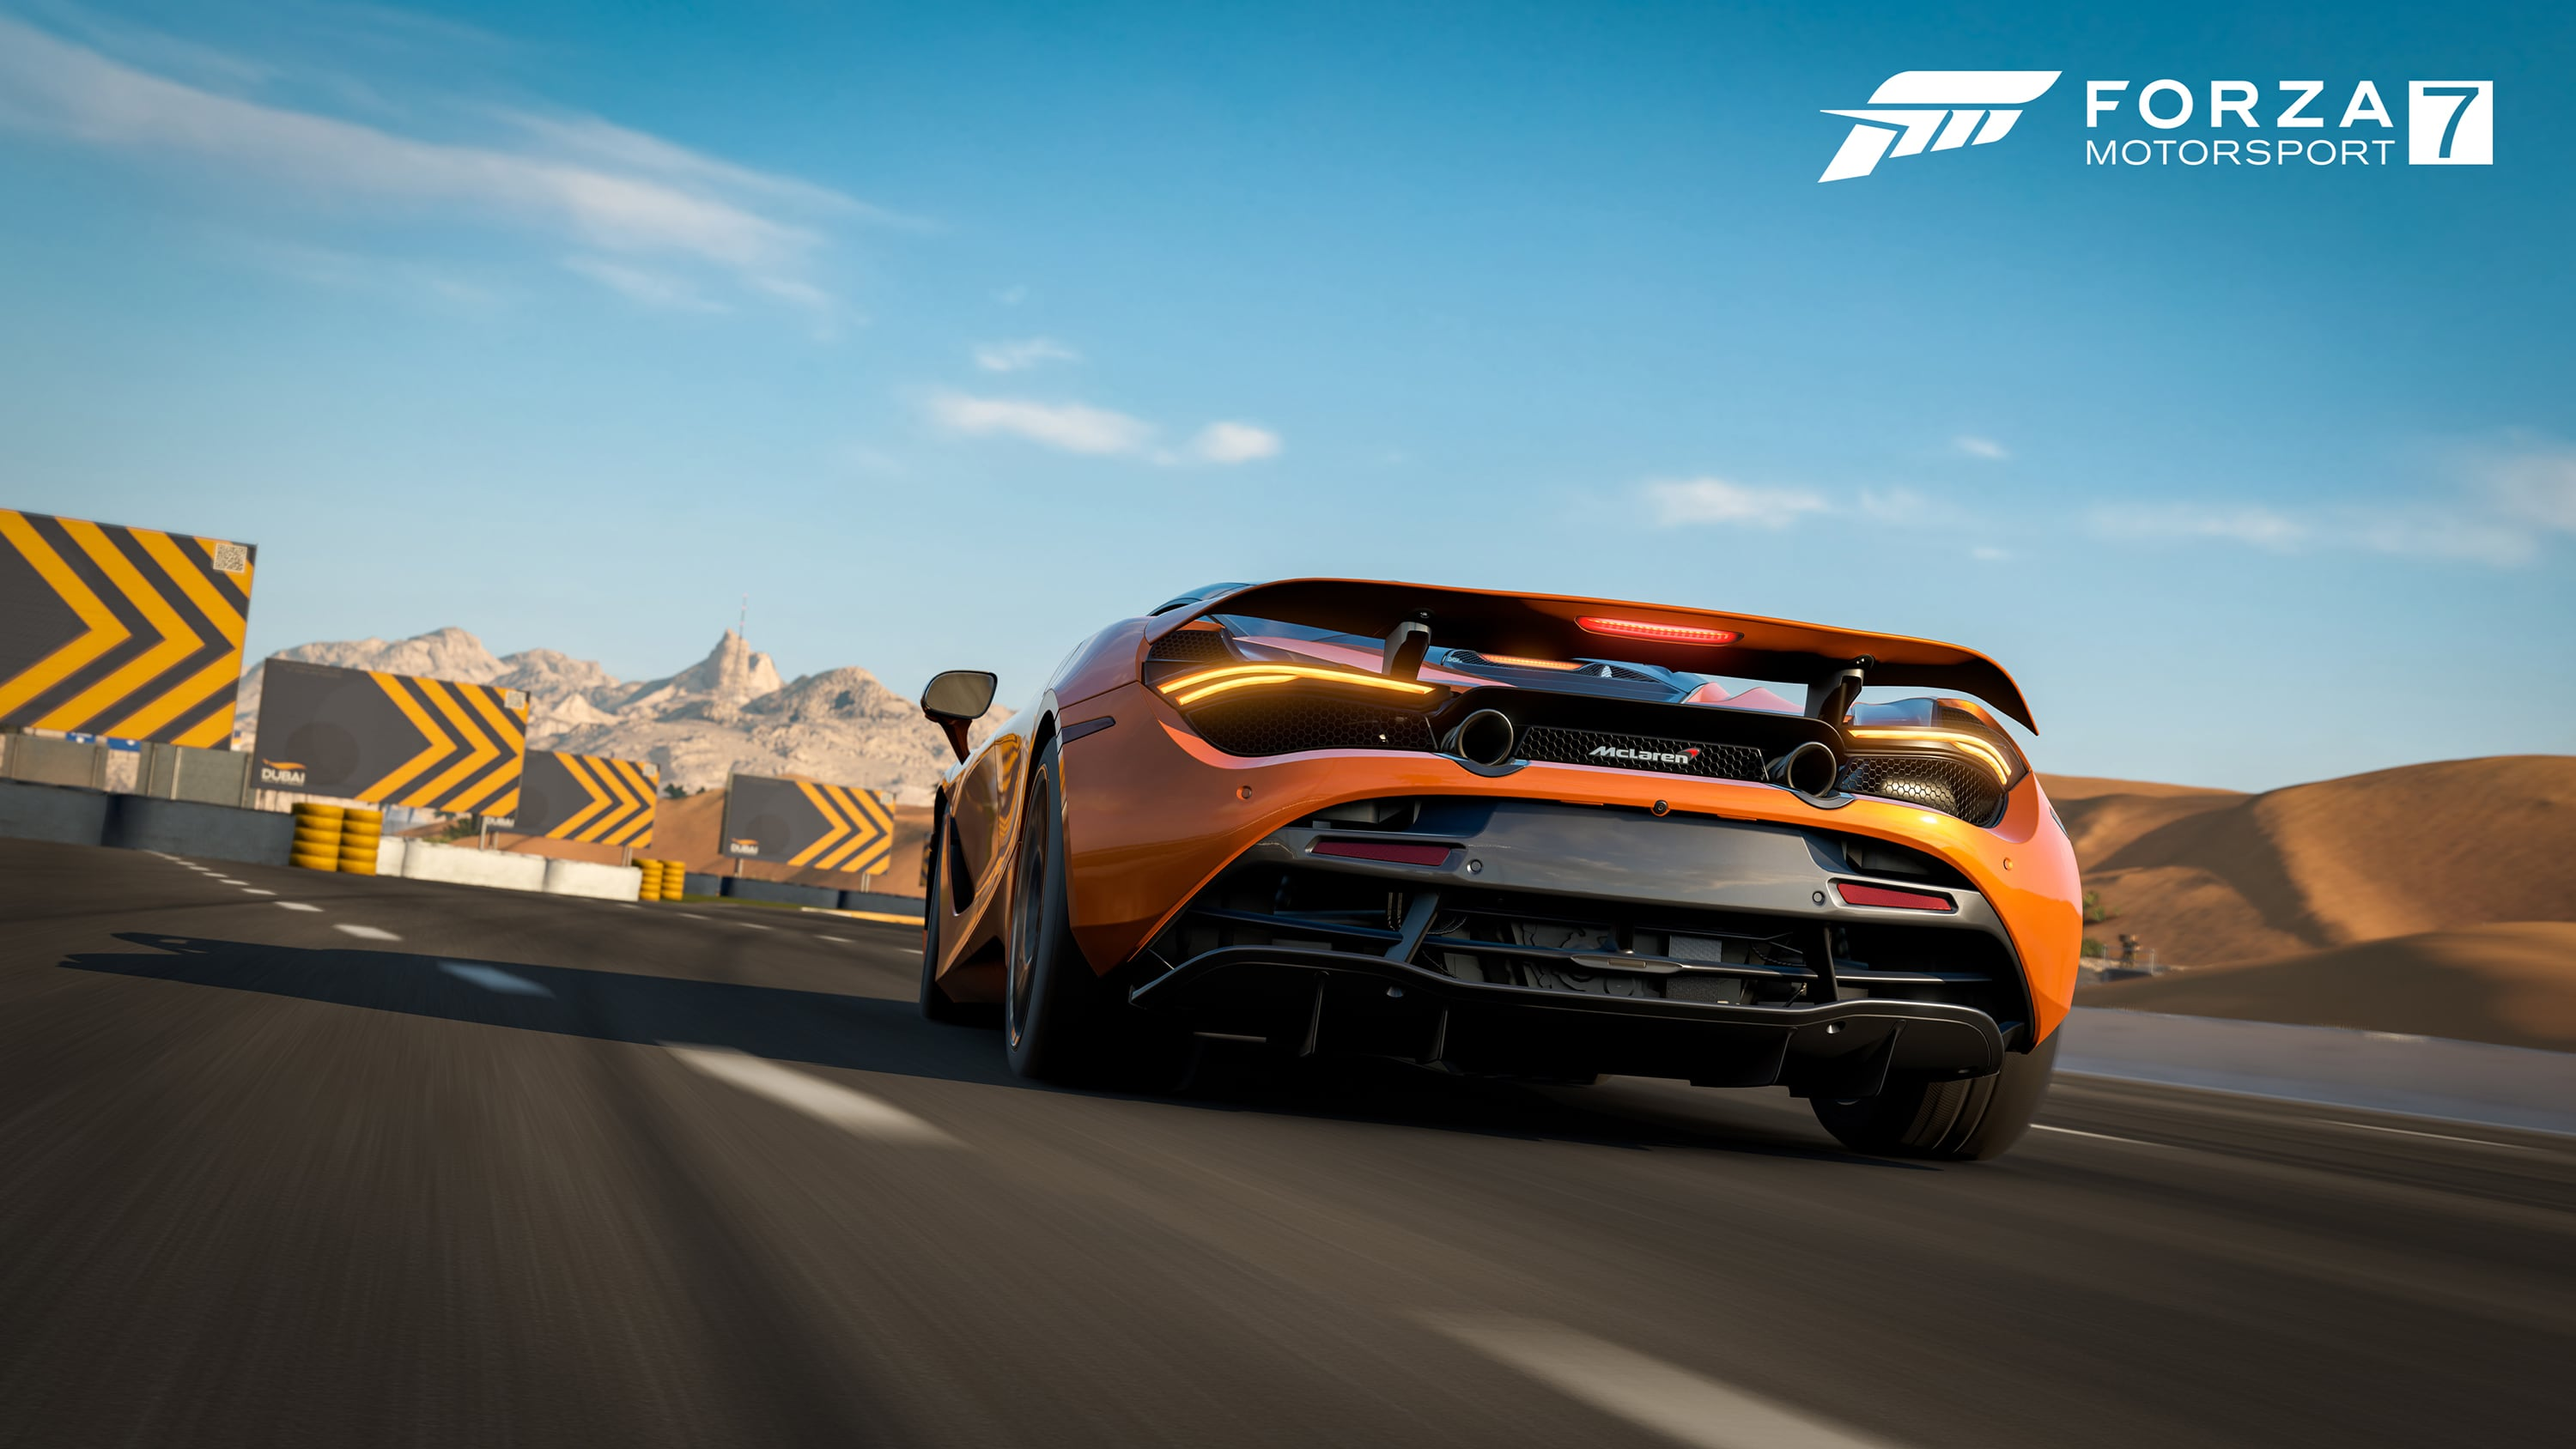 Forza Motorsport 7 Wallpapers Ultra Hd Gaming Backgrounds: Forza Motorsport 7 Mclaren 4k, HD Games, 4k Wallpapers